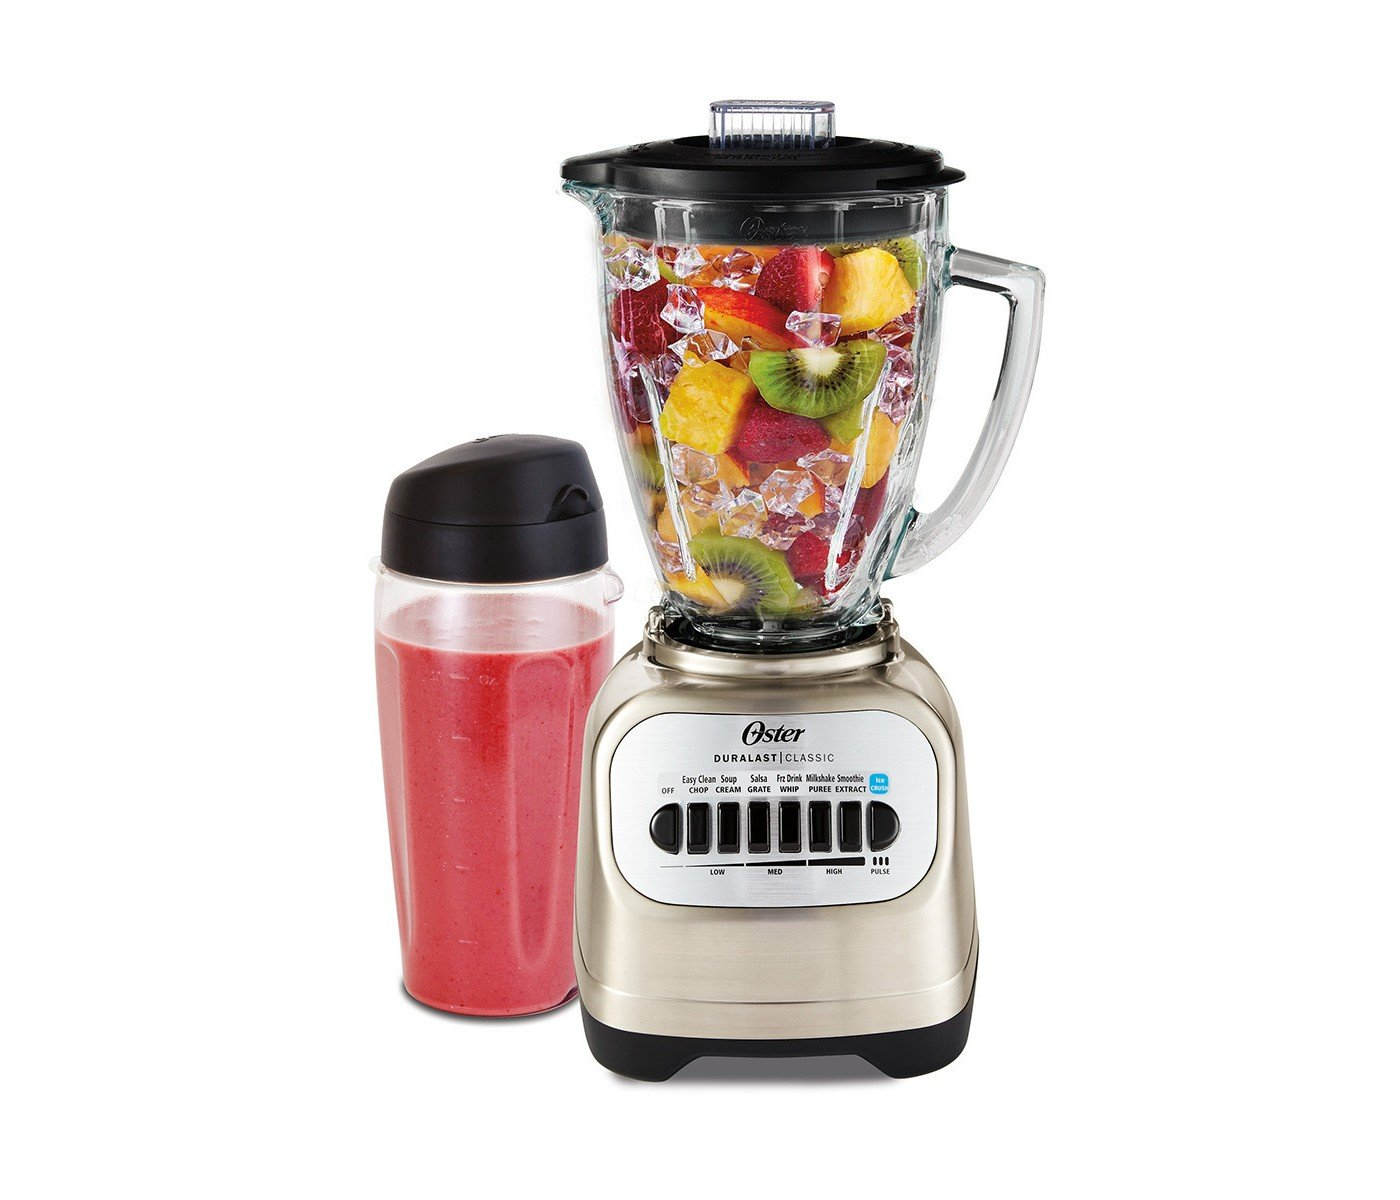 BLSTCG-CBG: Oster Classic Series Blender with Travel Smoothie Cup